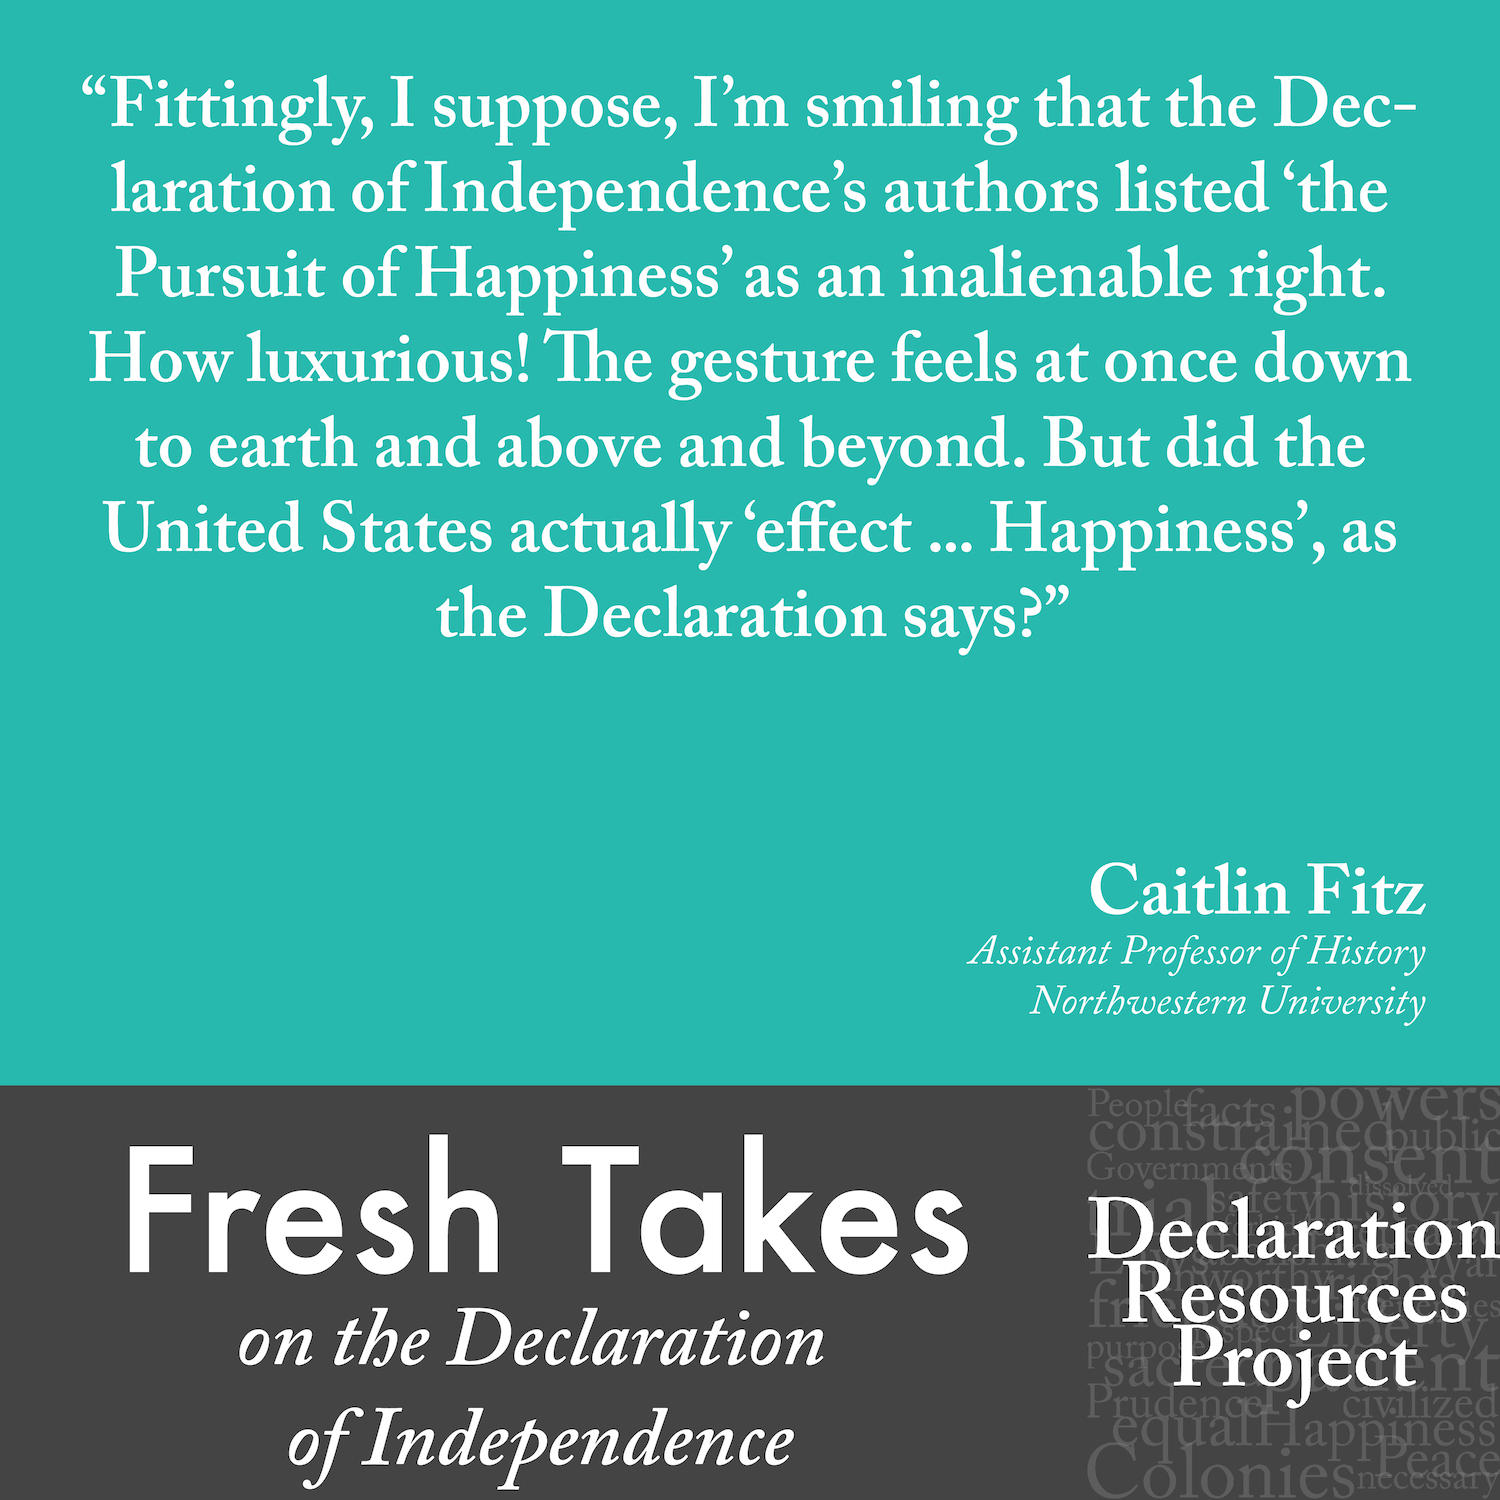 Caitlin Fitz's Fresh Take on the Declaration of Independence